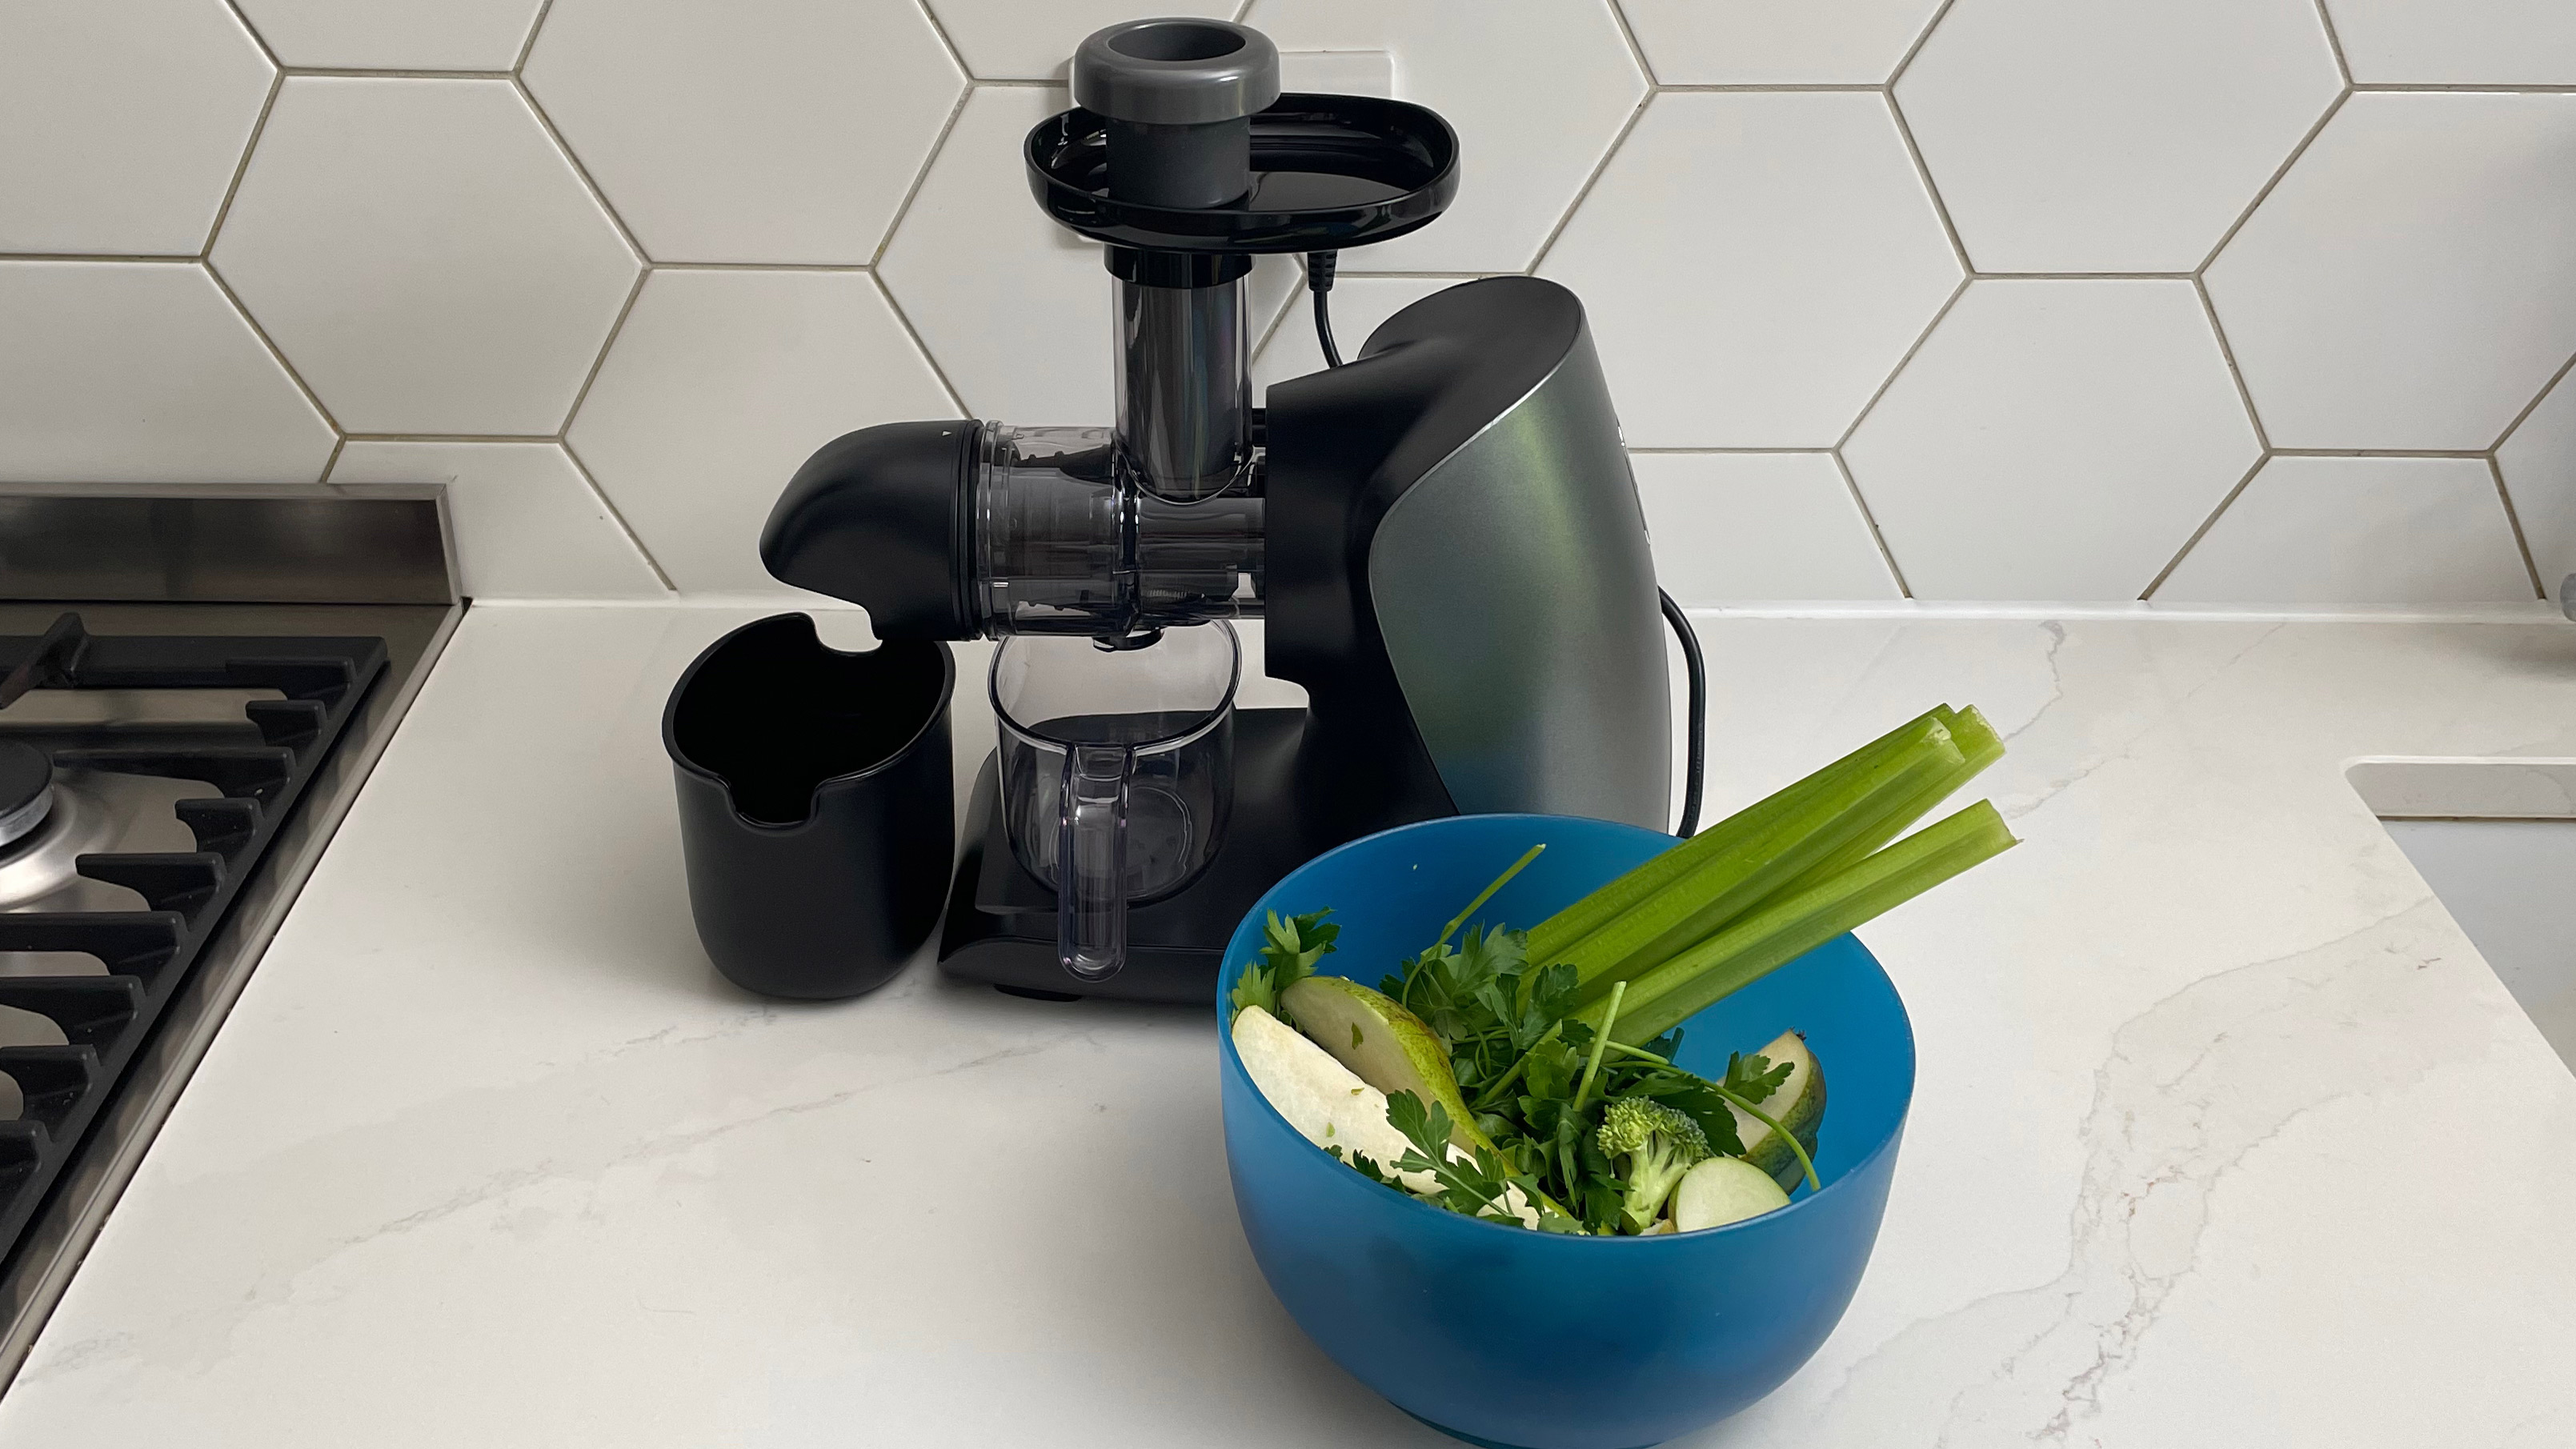 Ninja Cold Press Juicer with a selection of green fruit and vegetables ready to be juiced